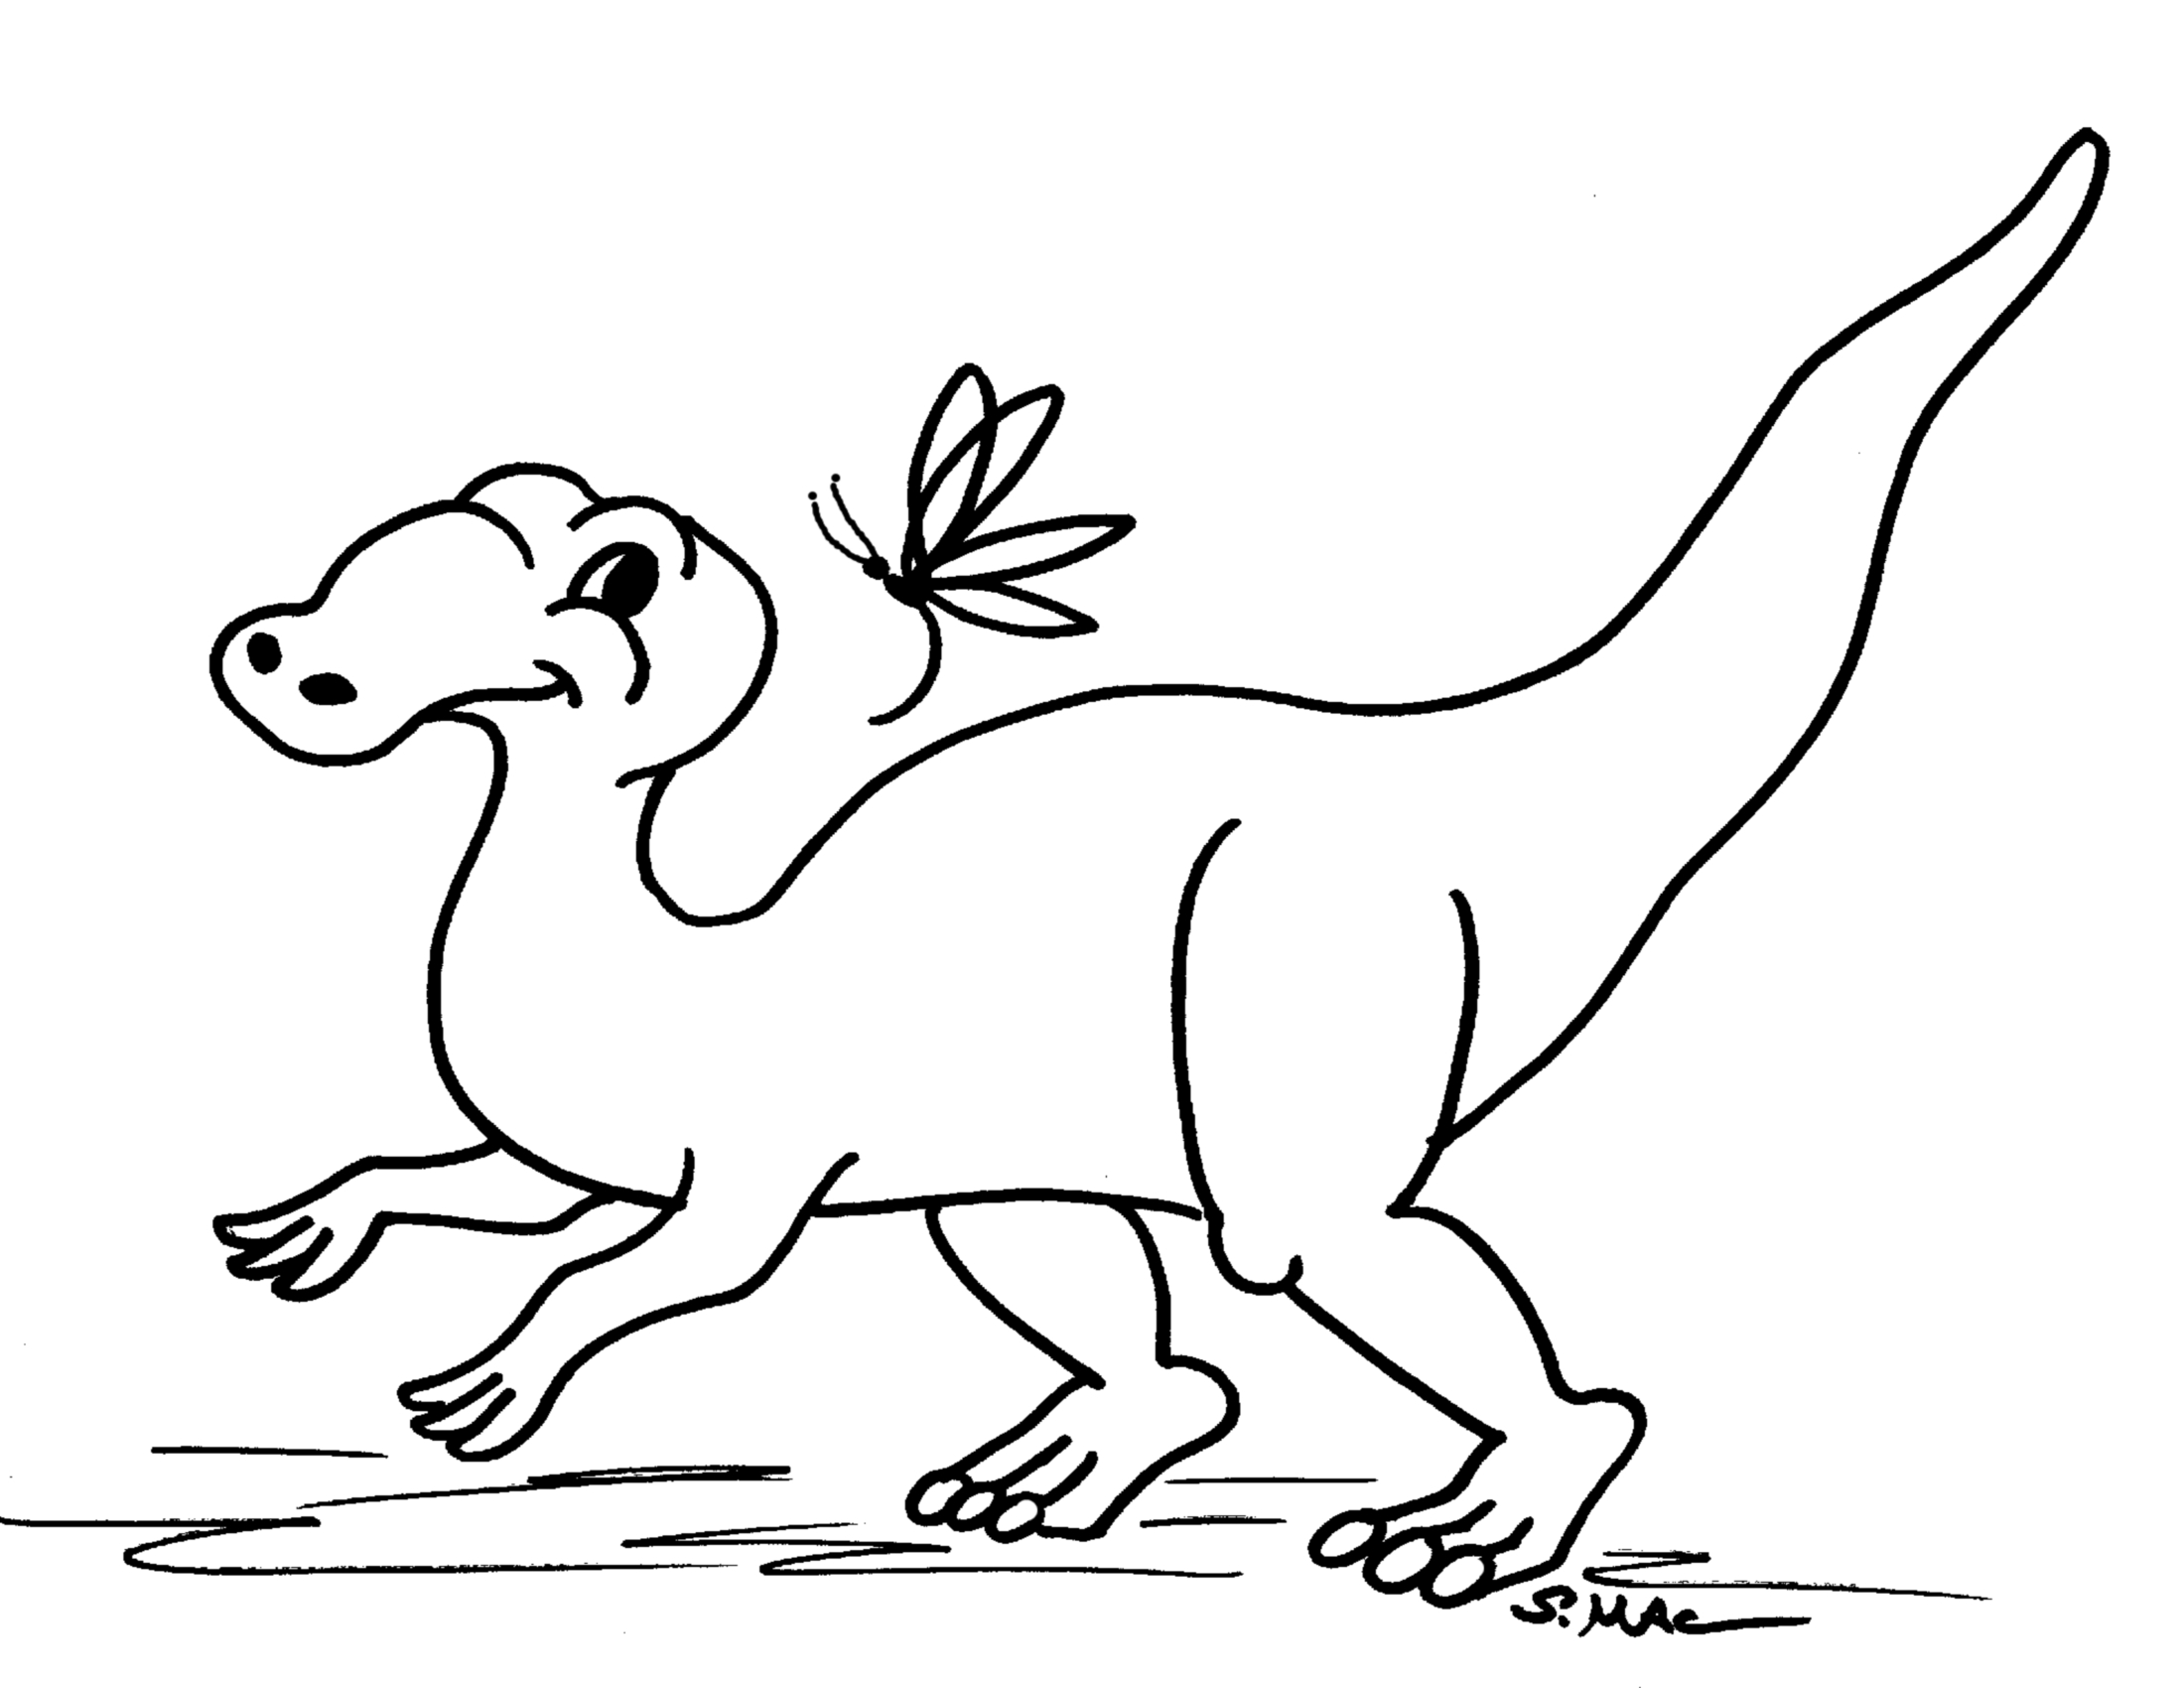 Robot Dinosaur Coloring Pages